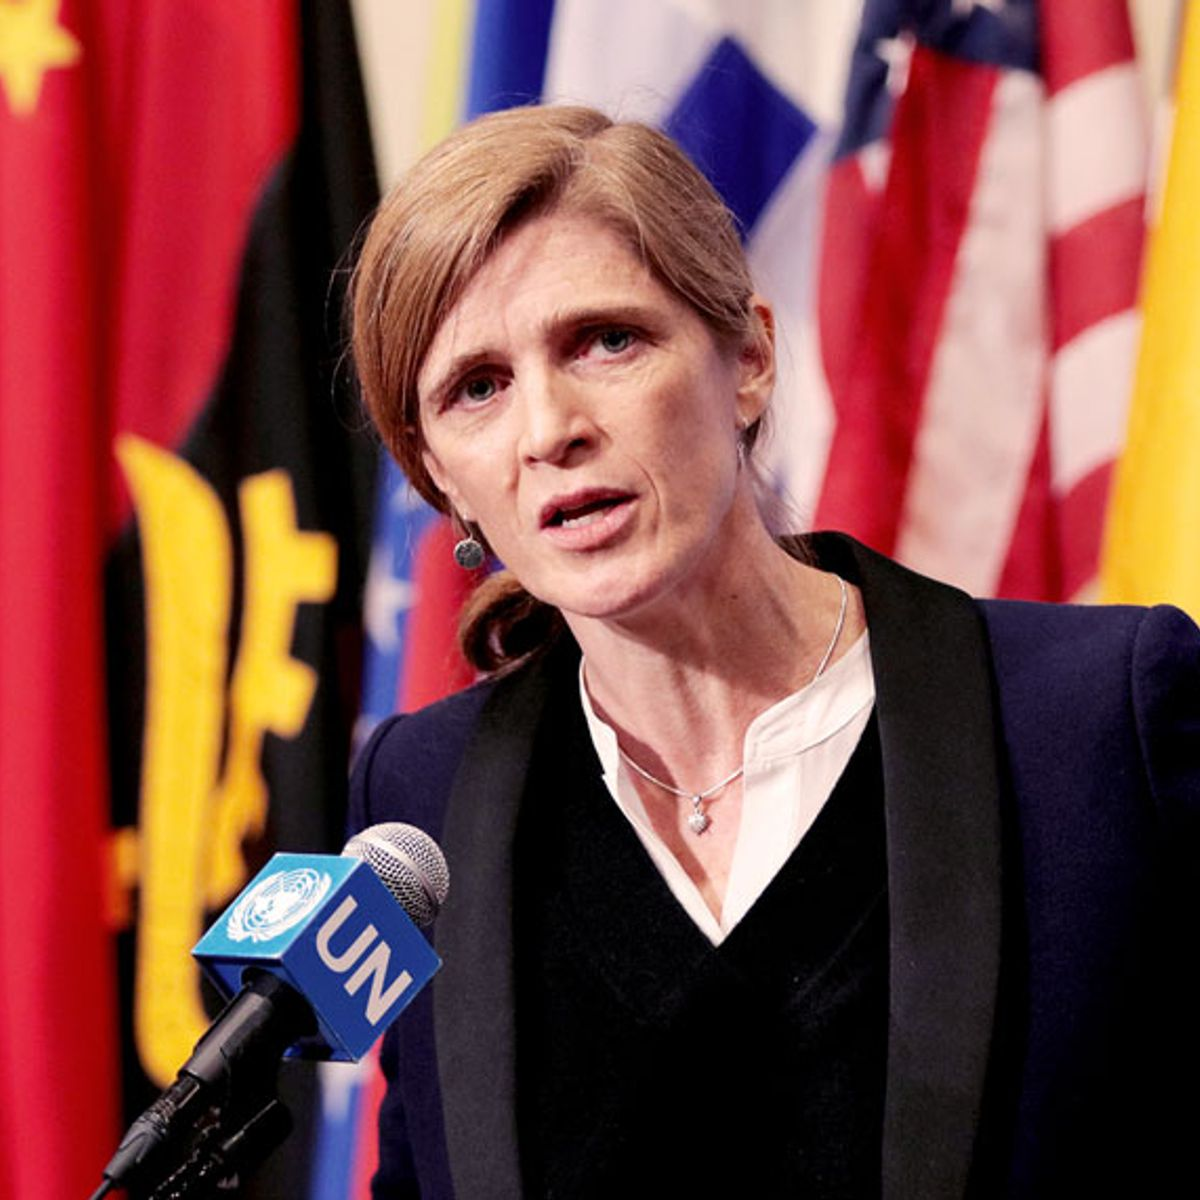 """Samantha Power: Trump has found """"new ways to compensate Putin for election interference"""""""